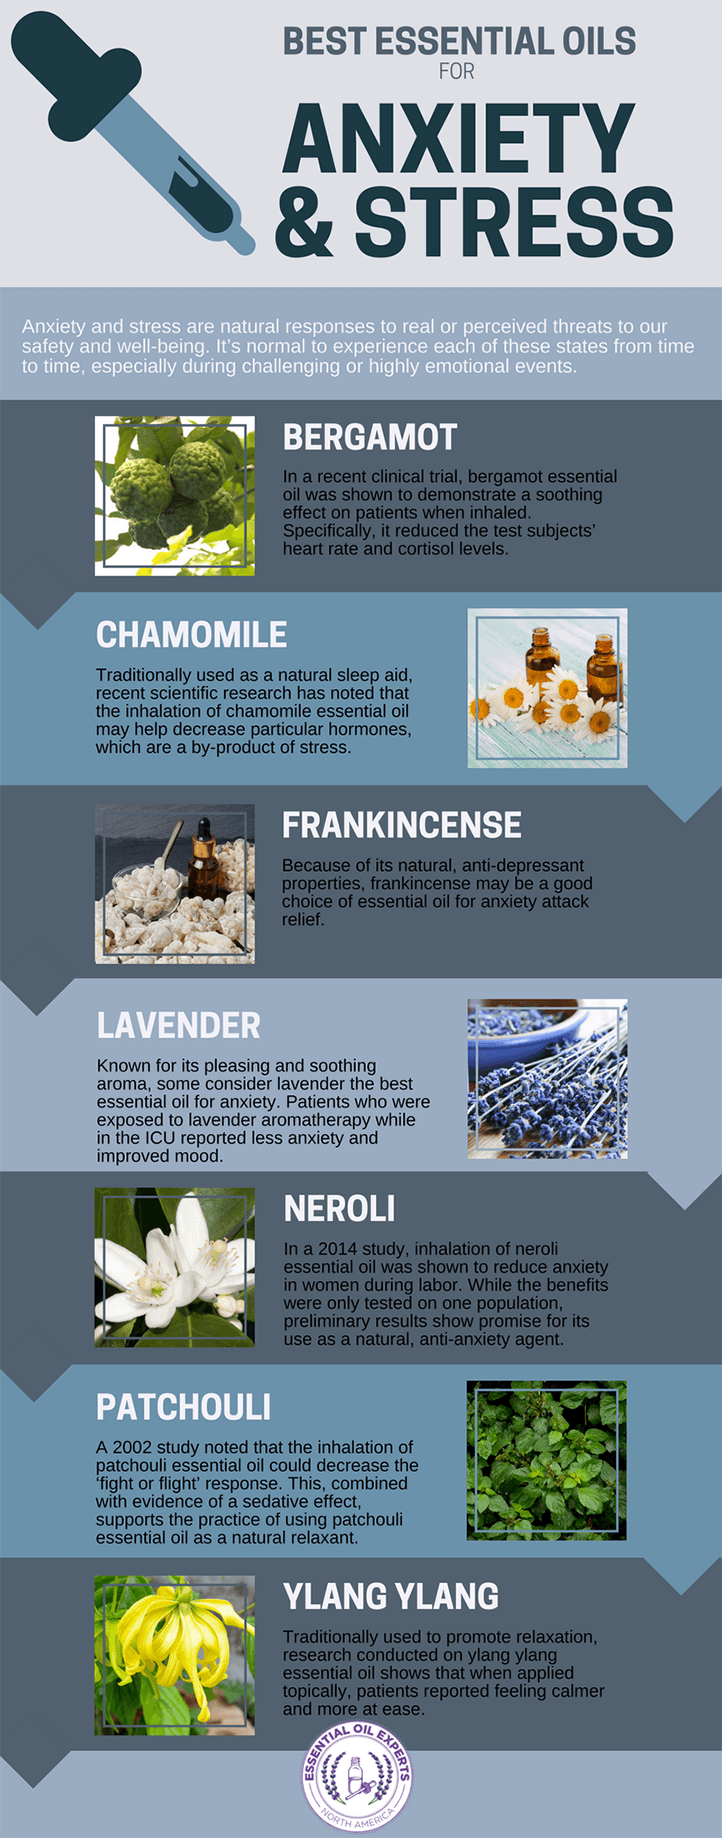 essential oils for anxiety and stress, best essential oils for anxiety